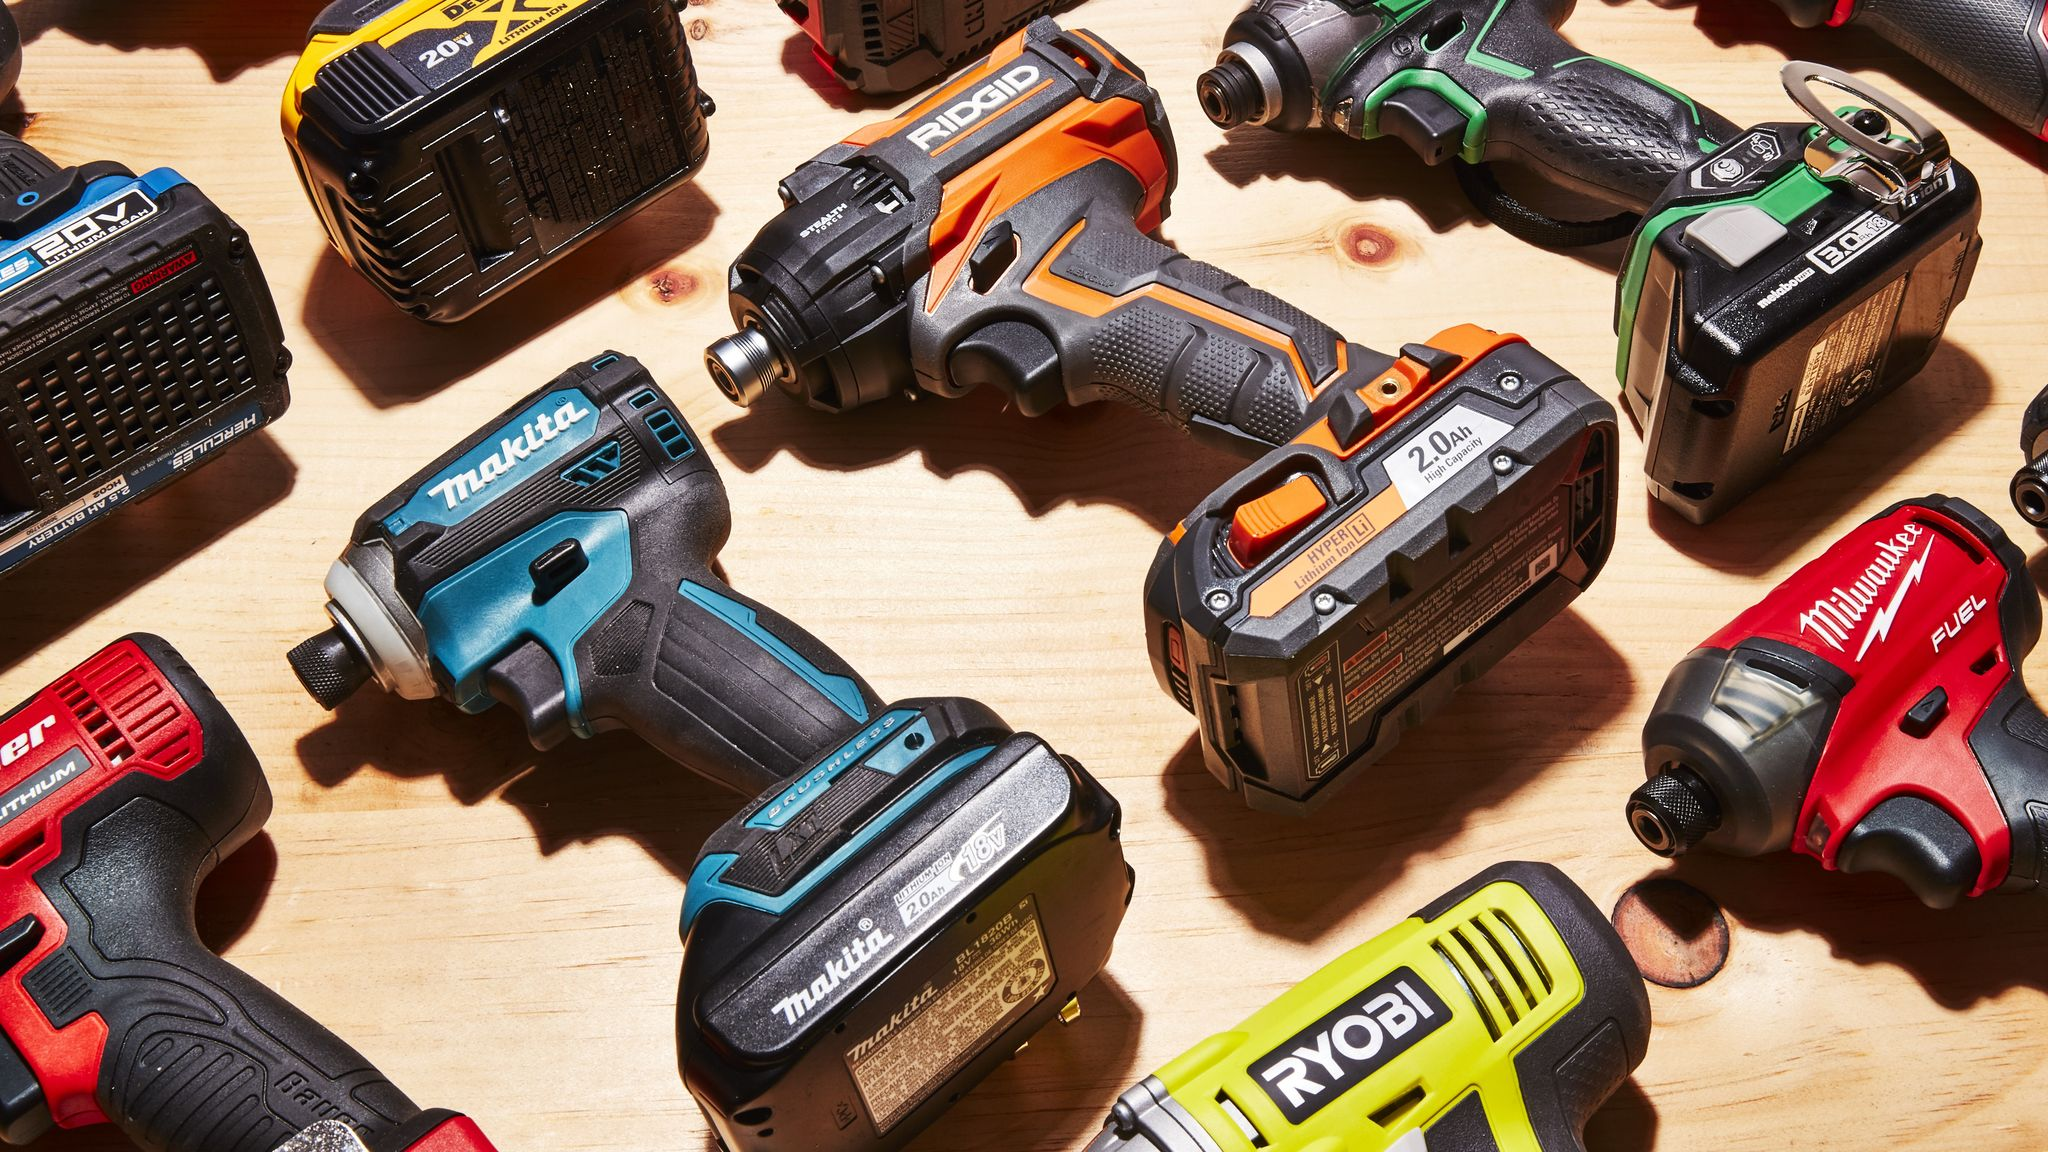 The 11 Best Impact Drivers for Any Job